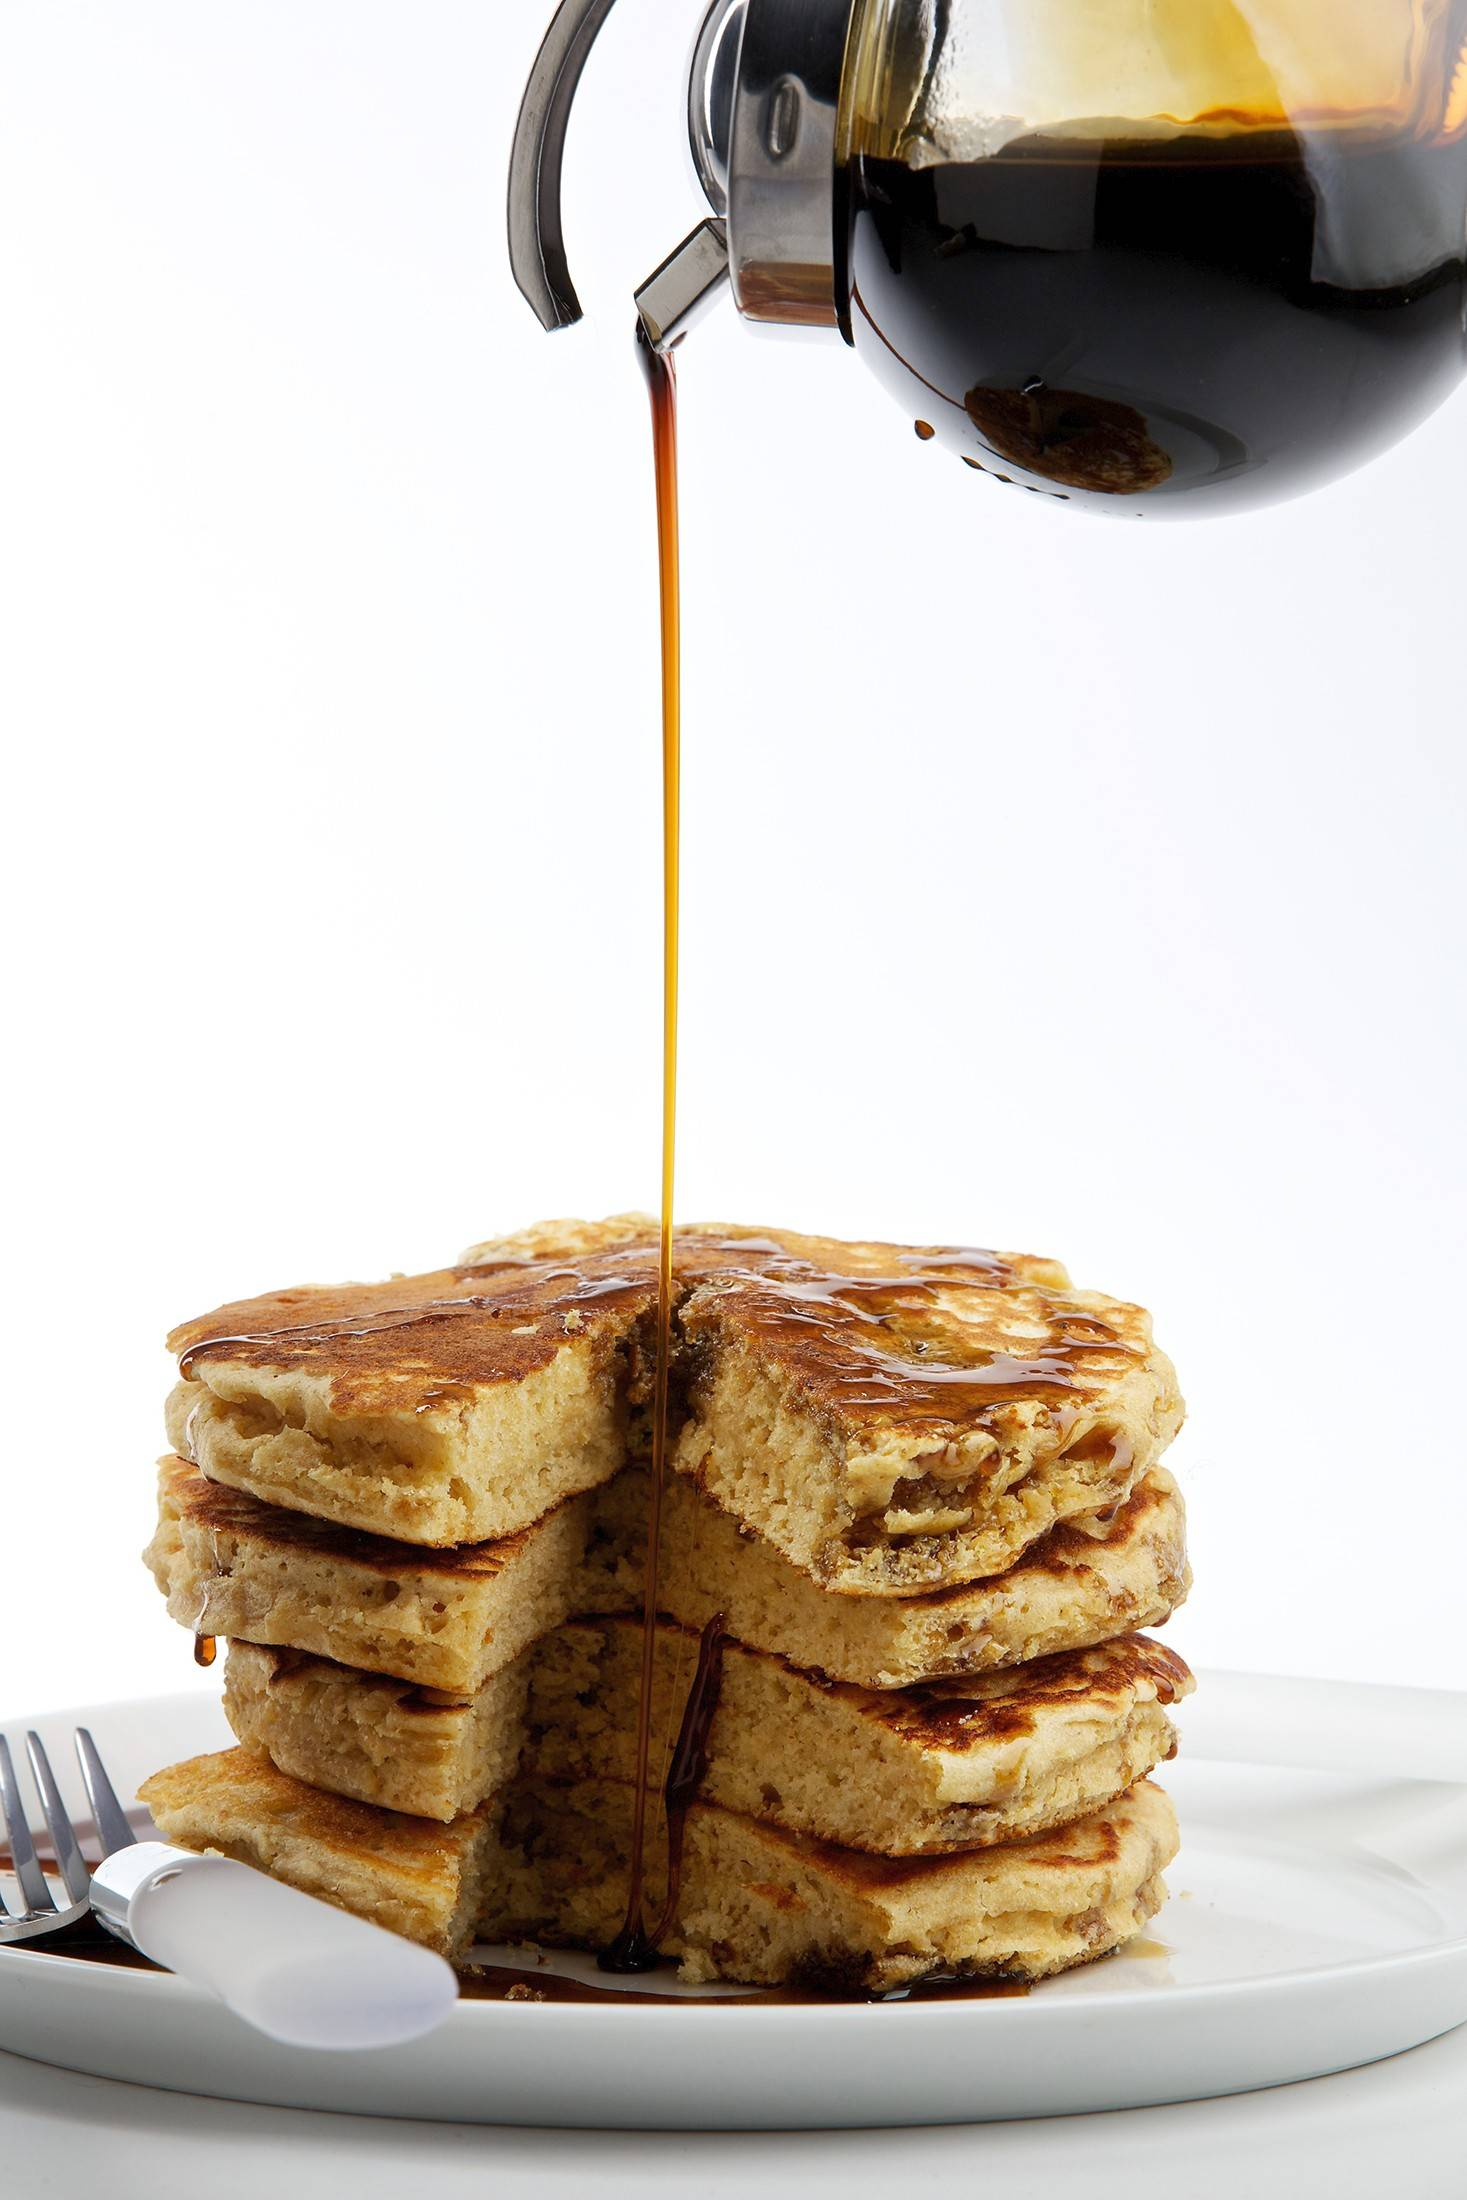 Whole wheat pastry flour proved the winner for Nevin Martell's rustic, yet fluffy Scratch Pancakes.